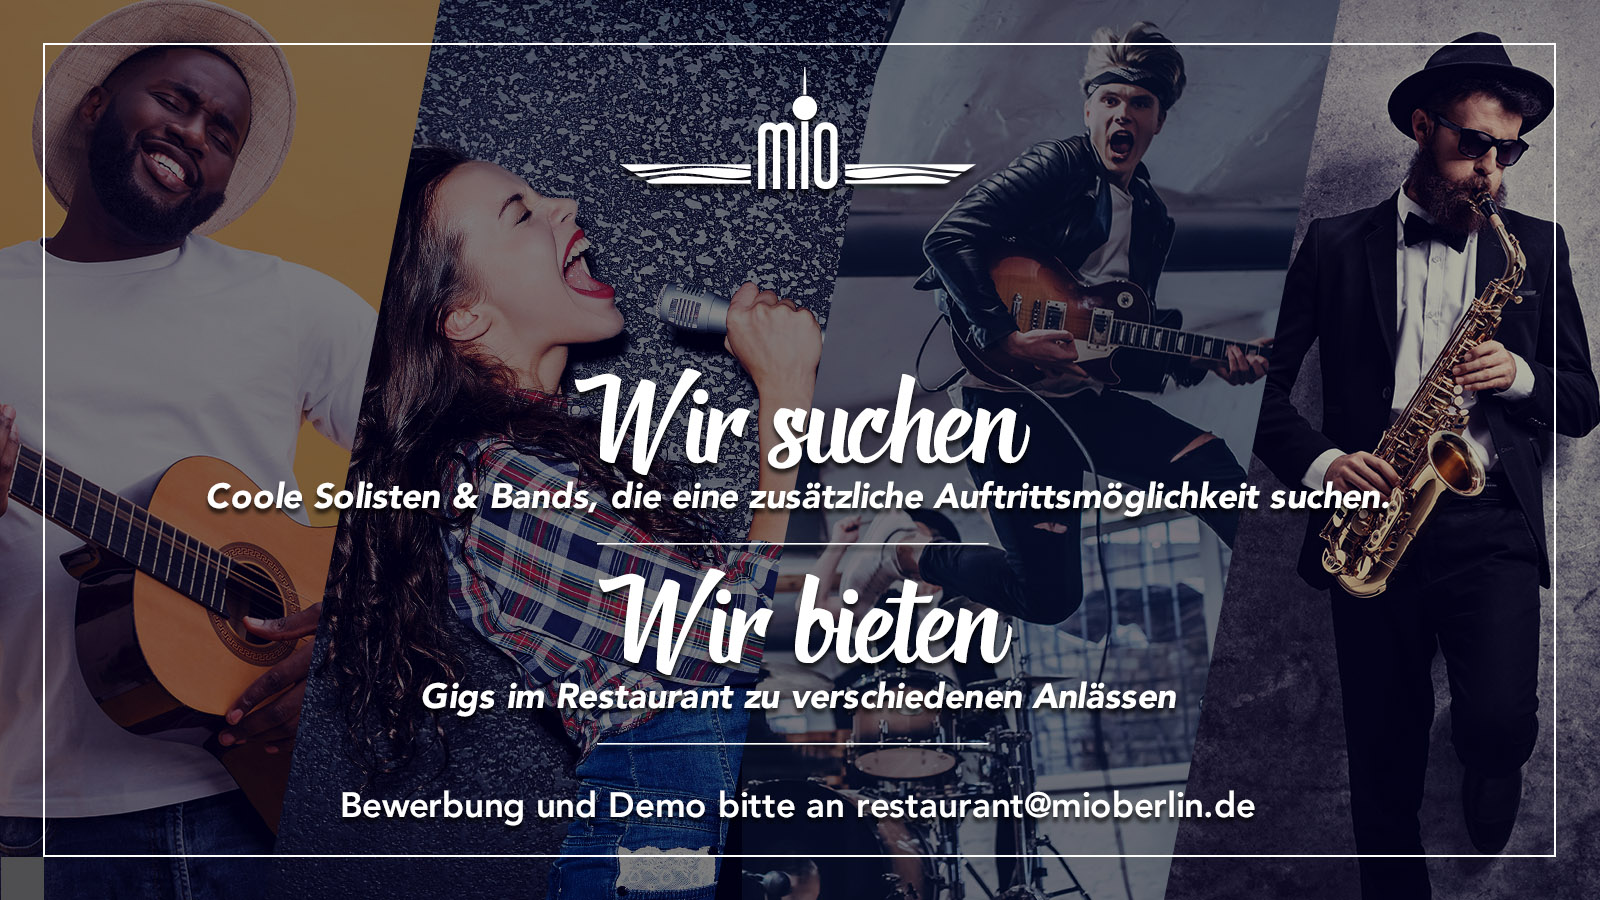 mio-berlin-restaurant-club-eventlocation-alexanderplatz-slider-artist